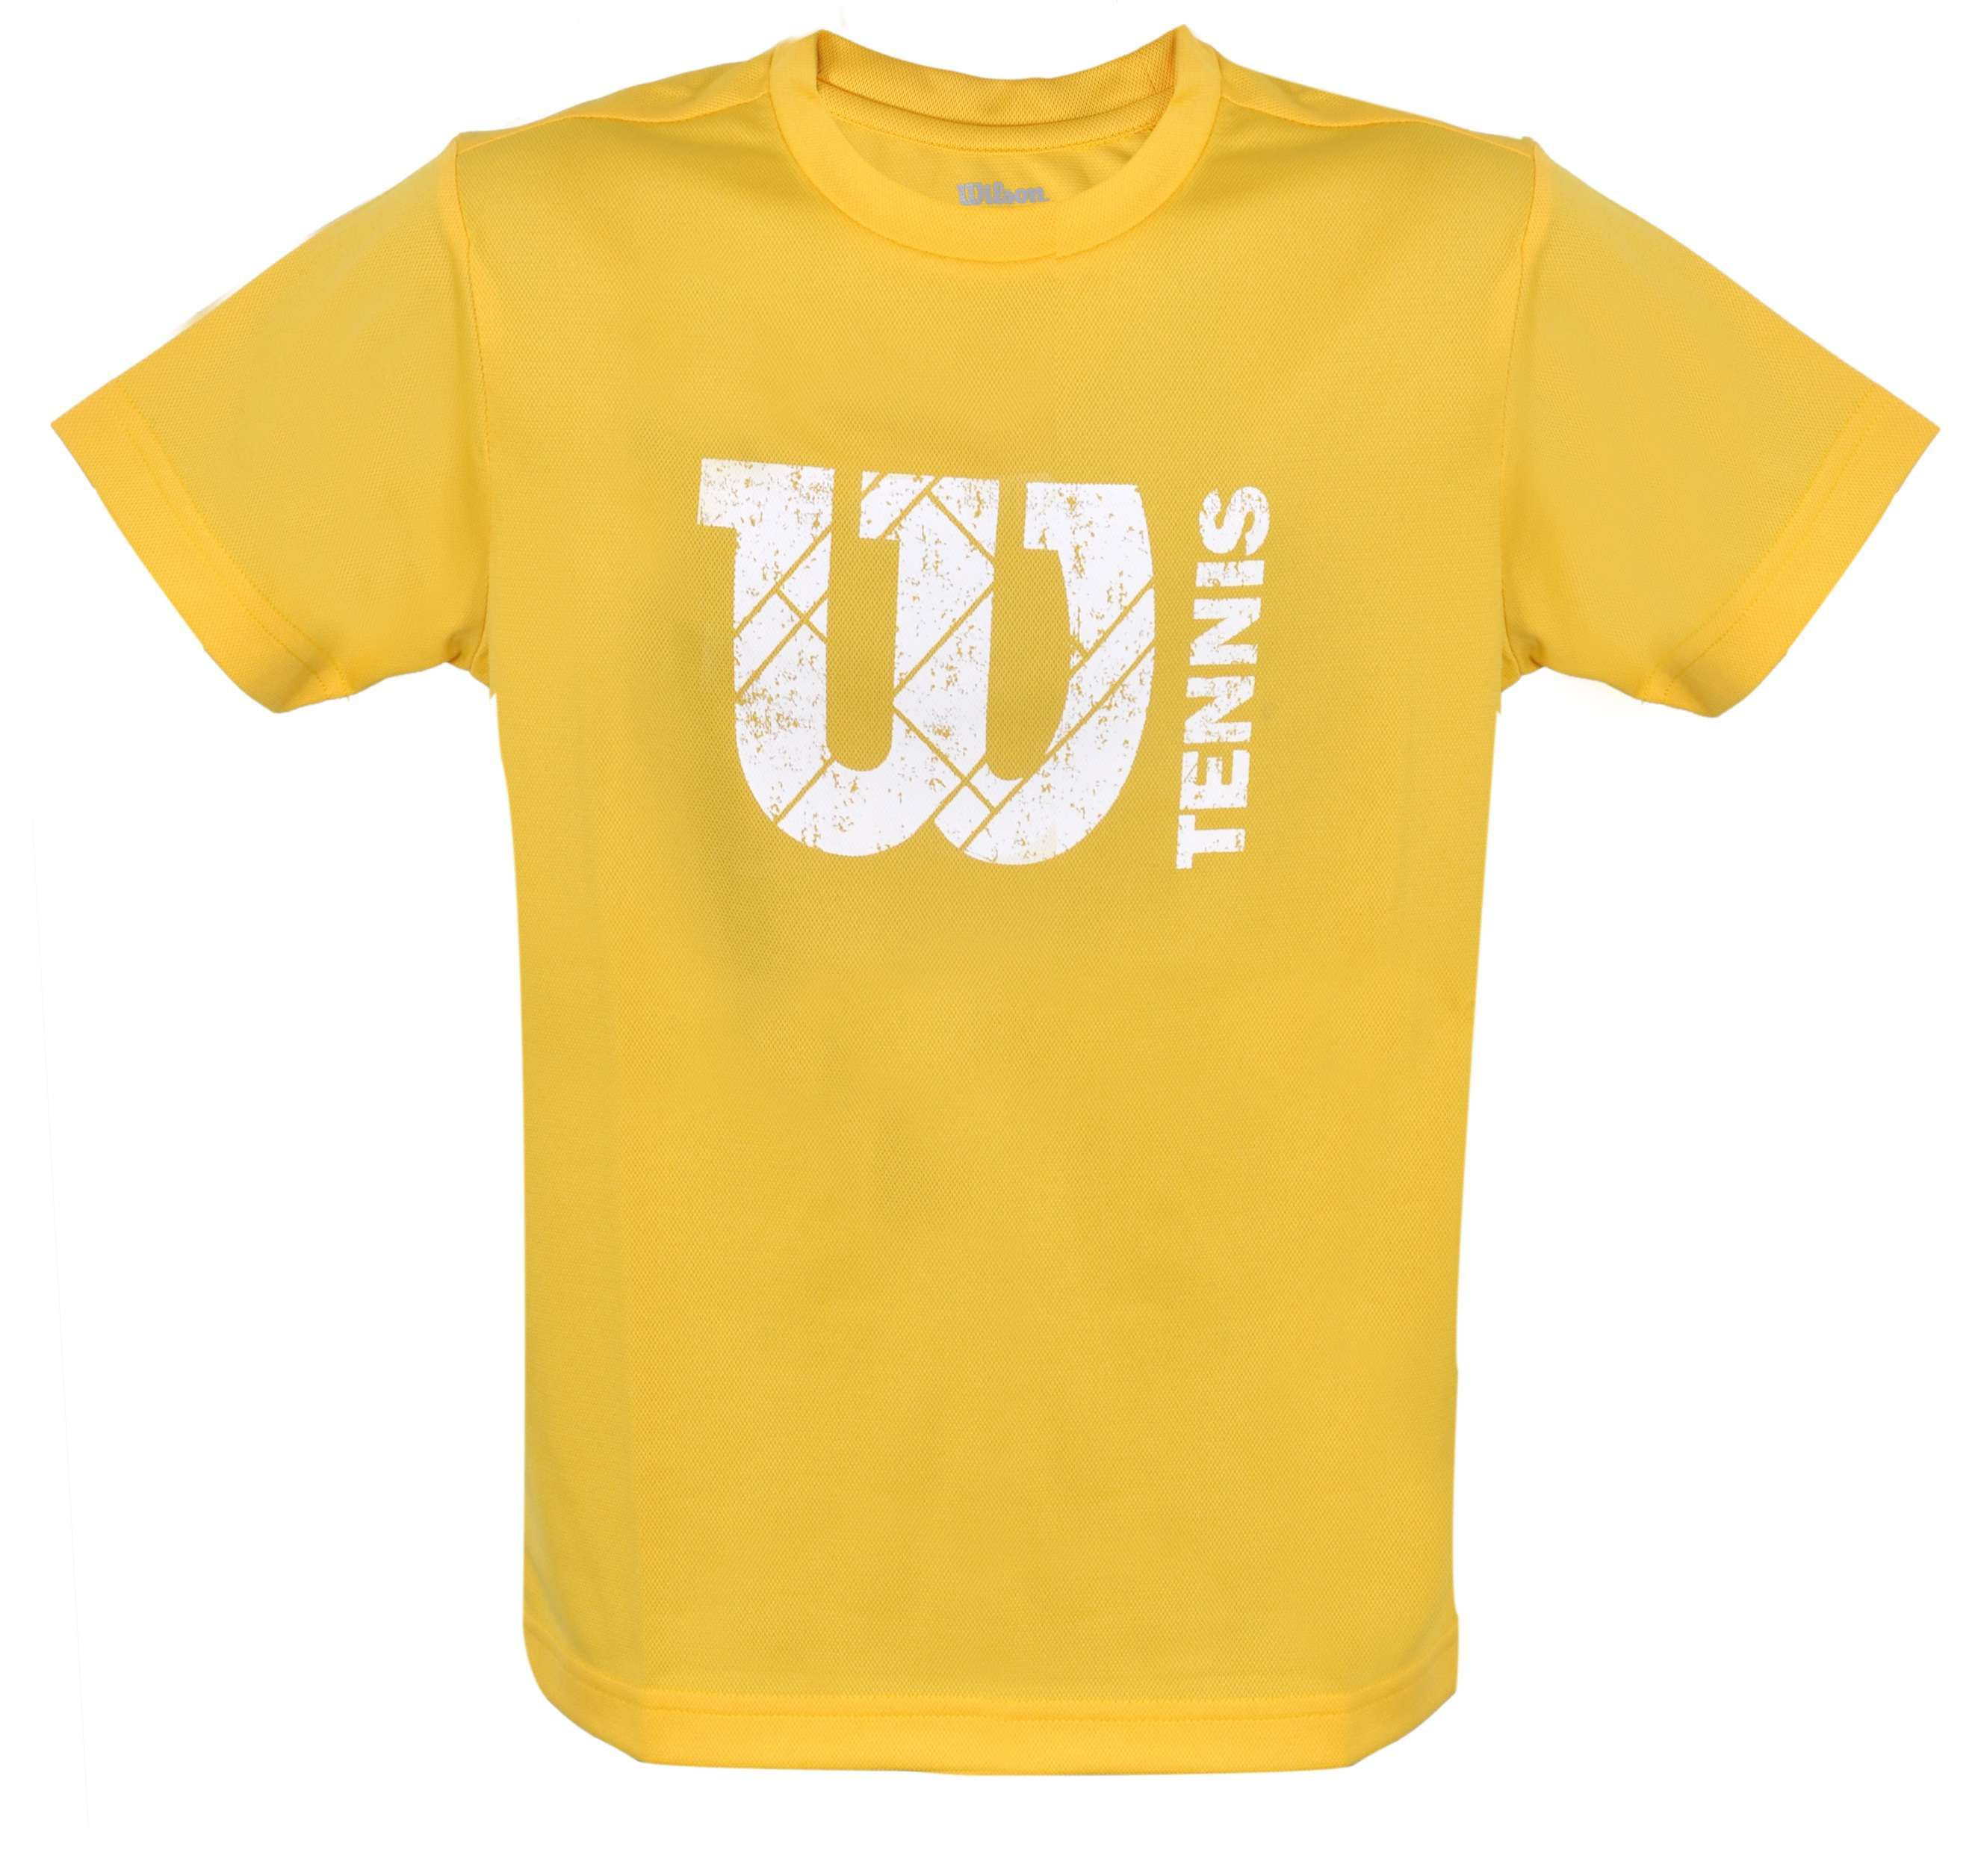 Wilson Yellow T-Shirt